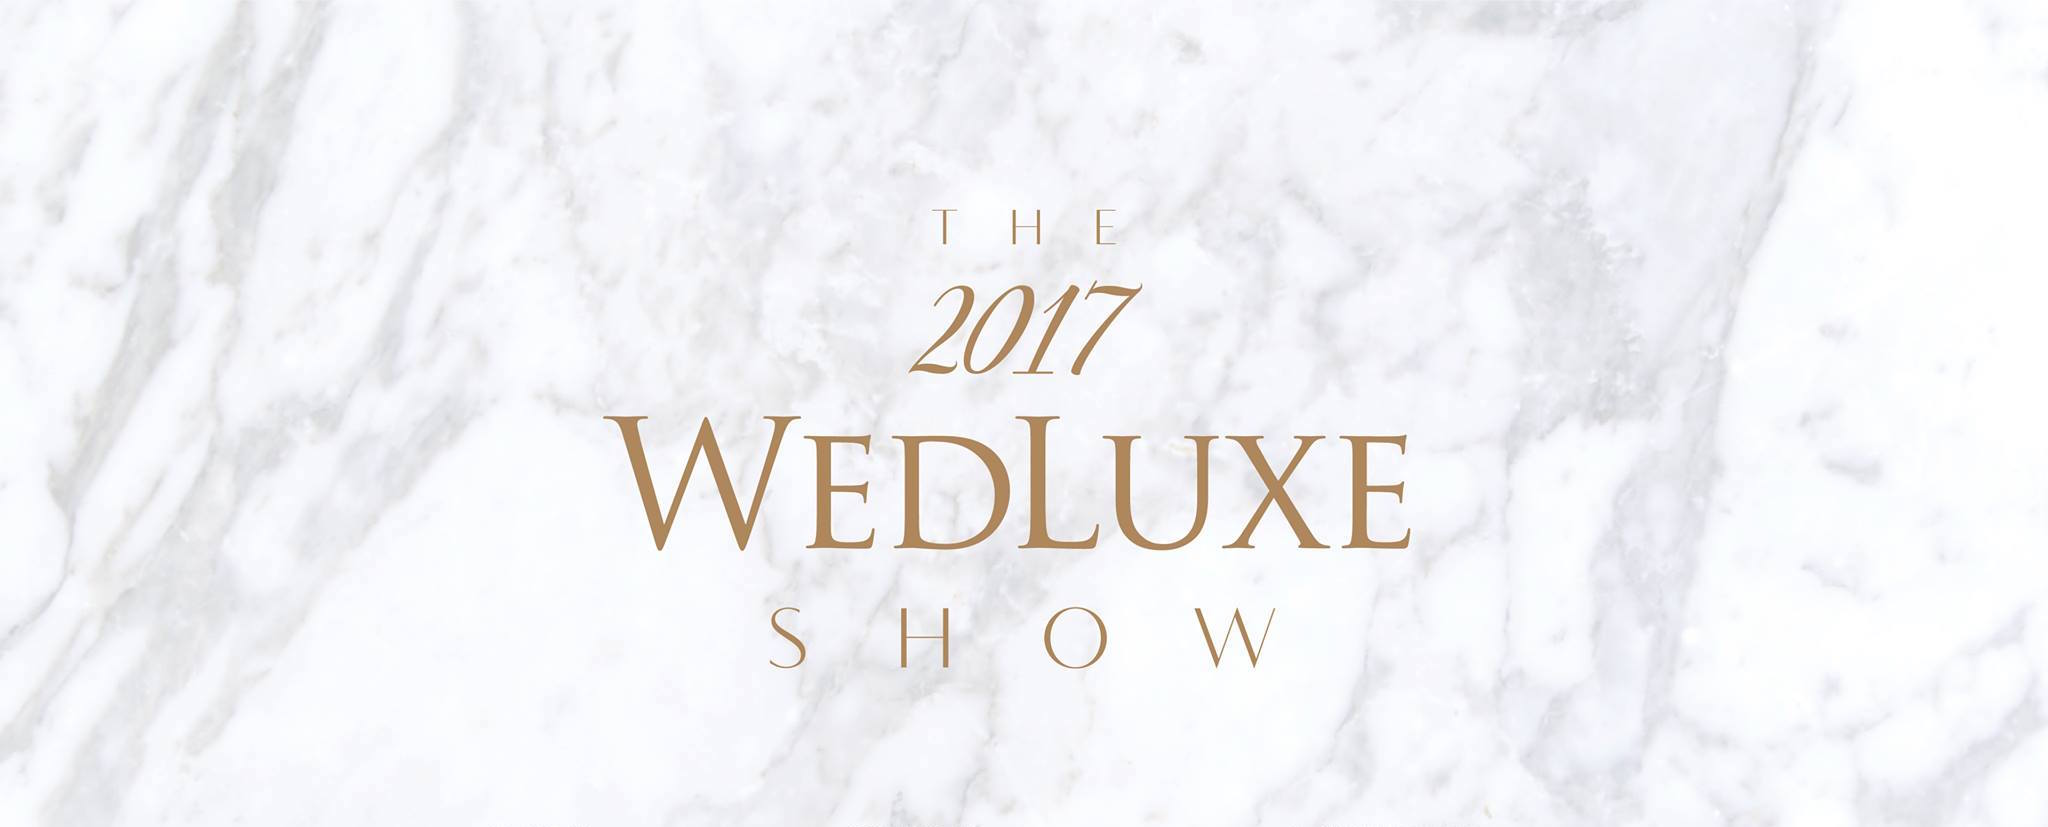 Wedluxe Show 2017 Fusion Events